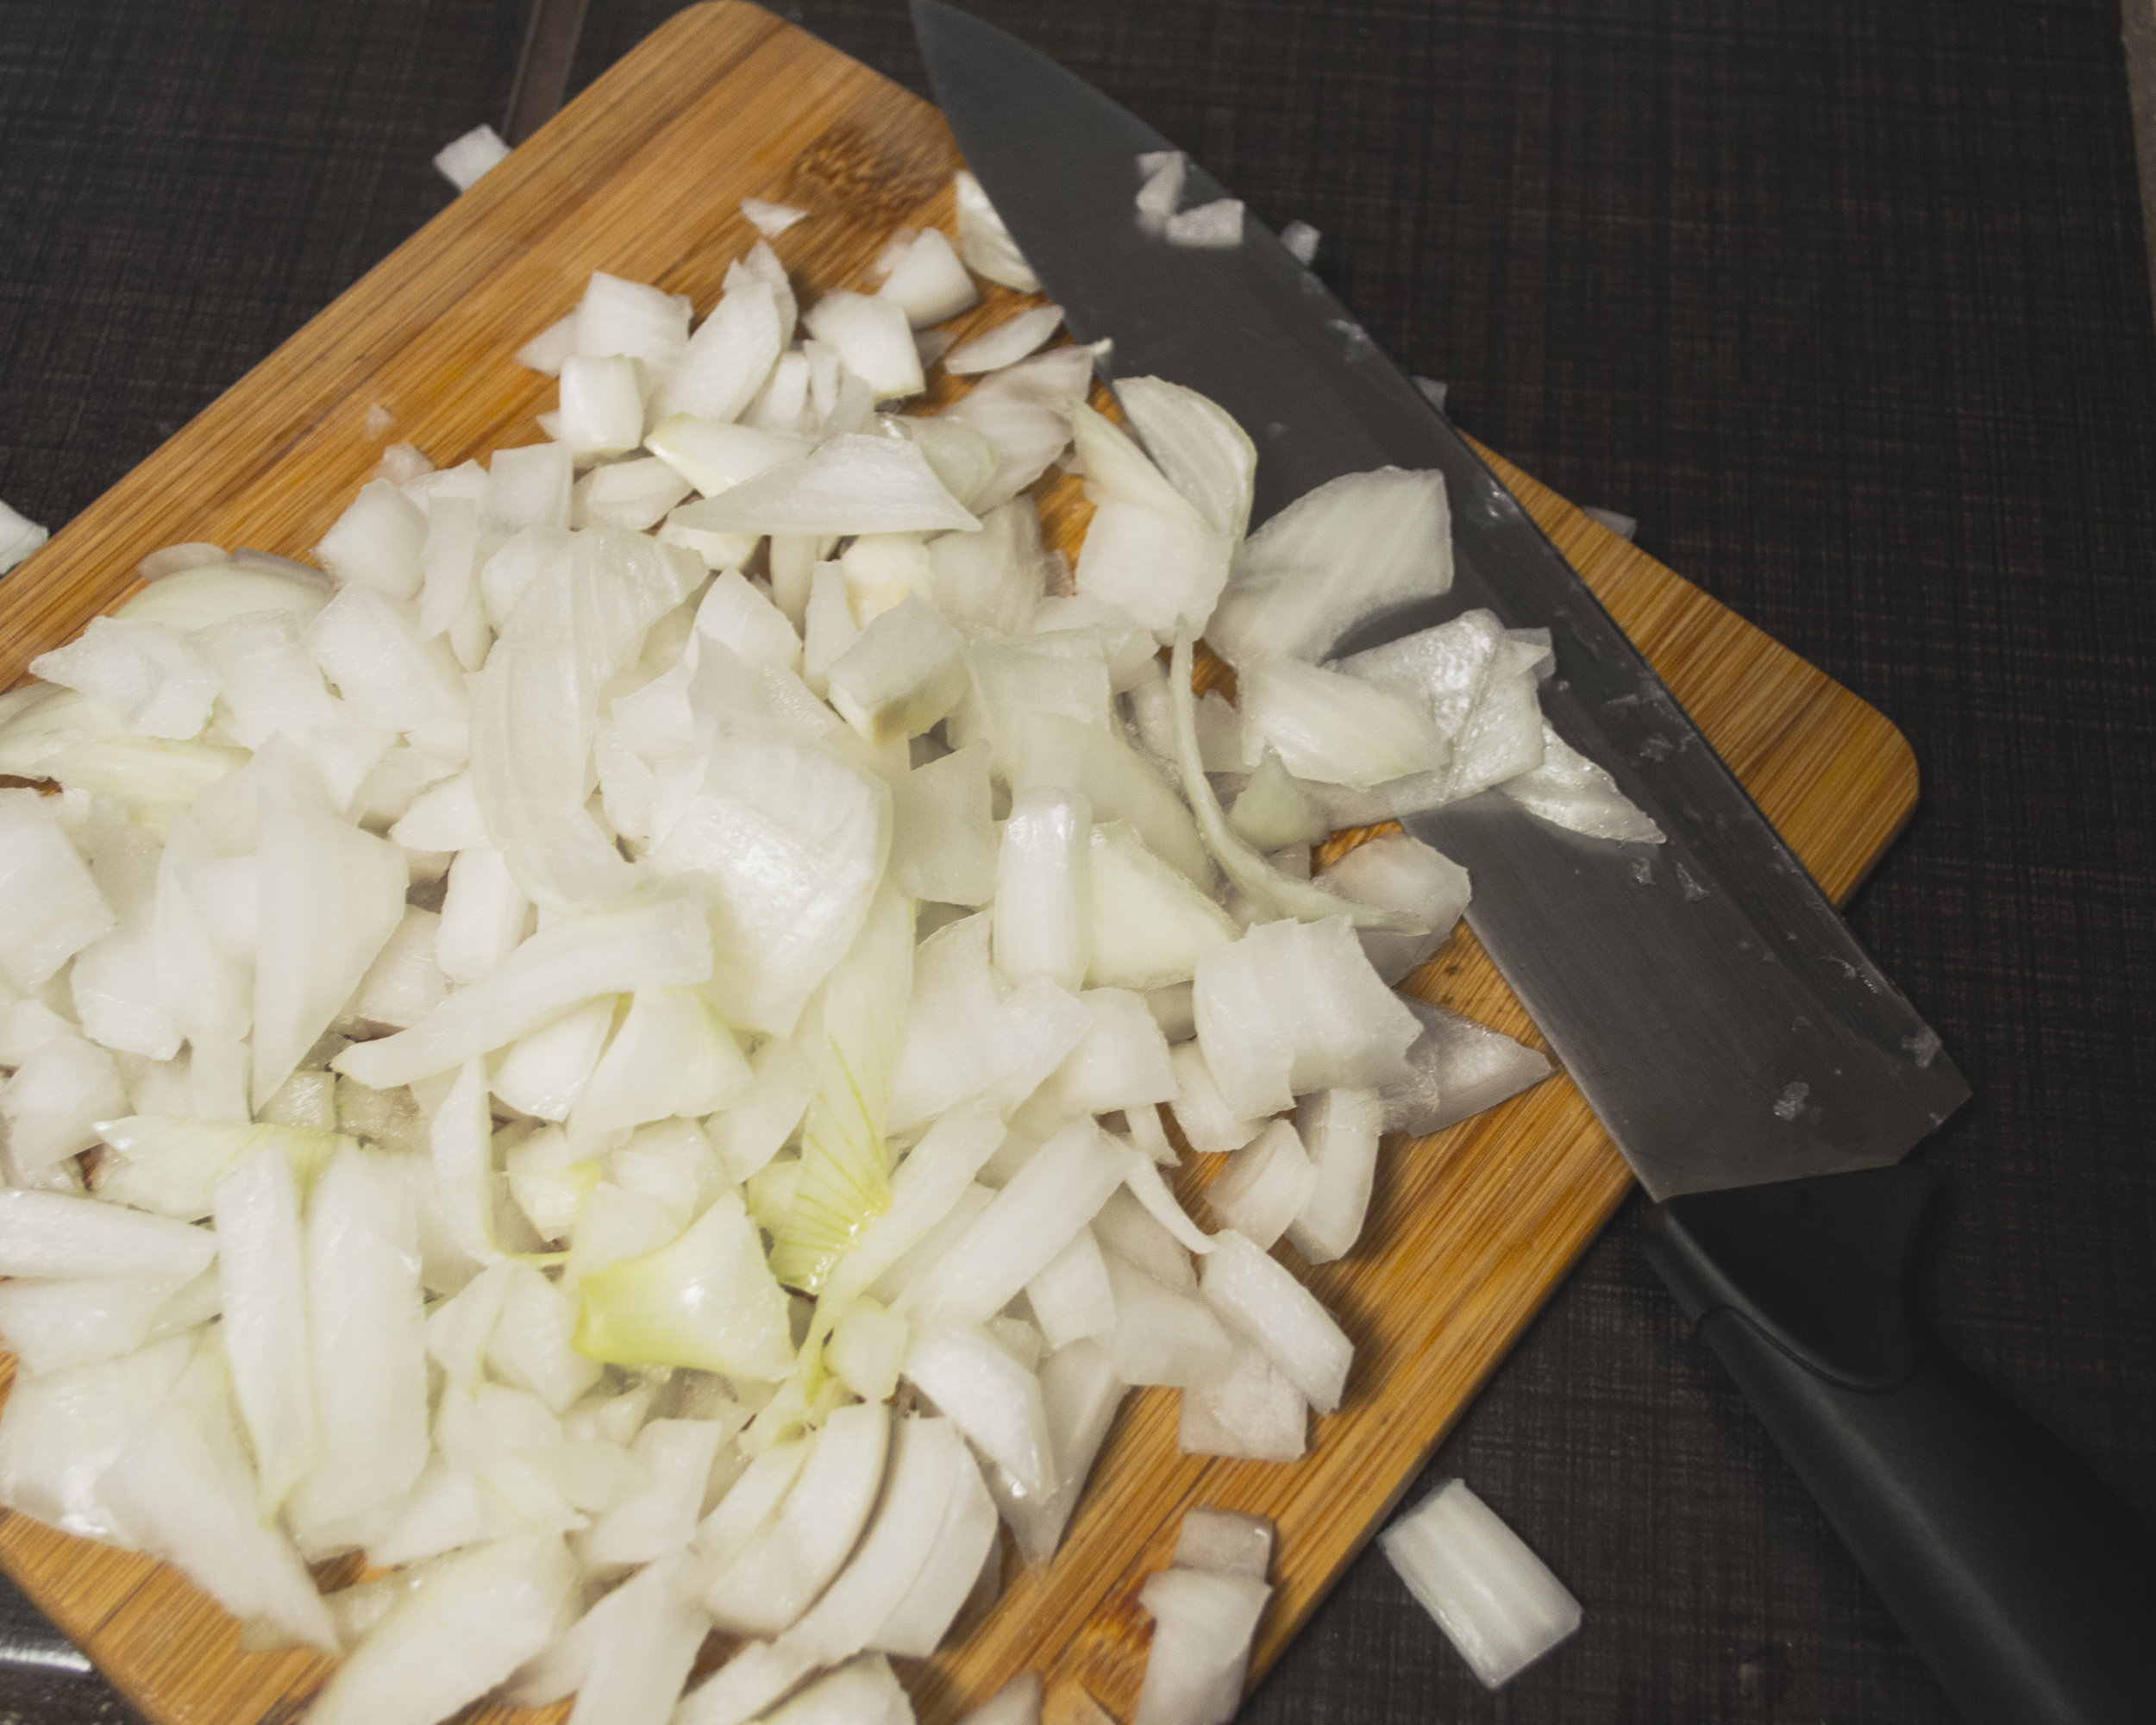 Chopped up white onion